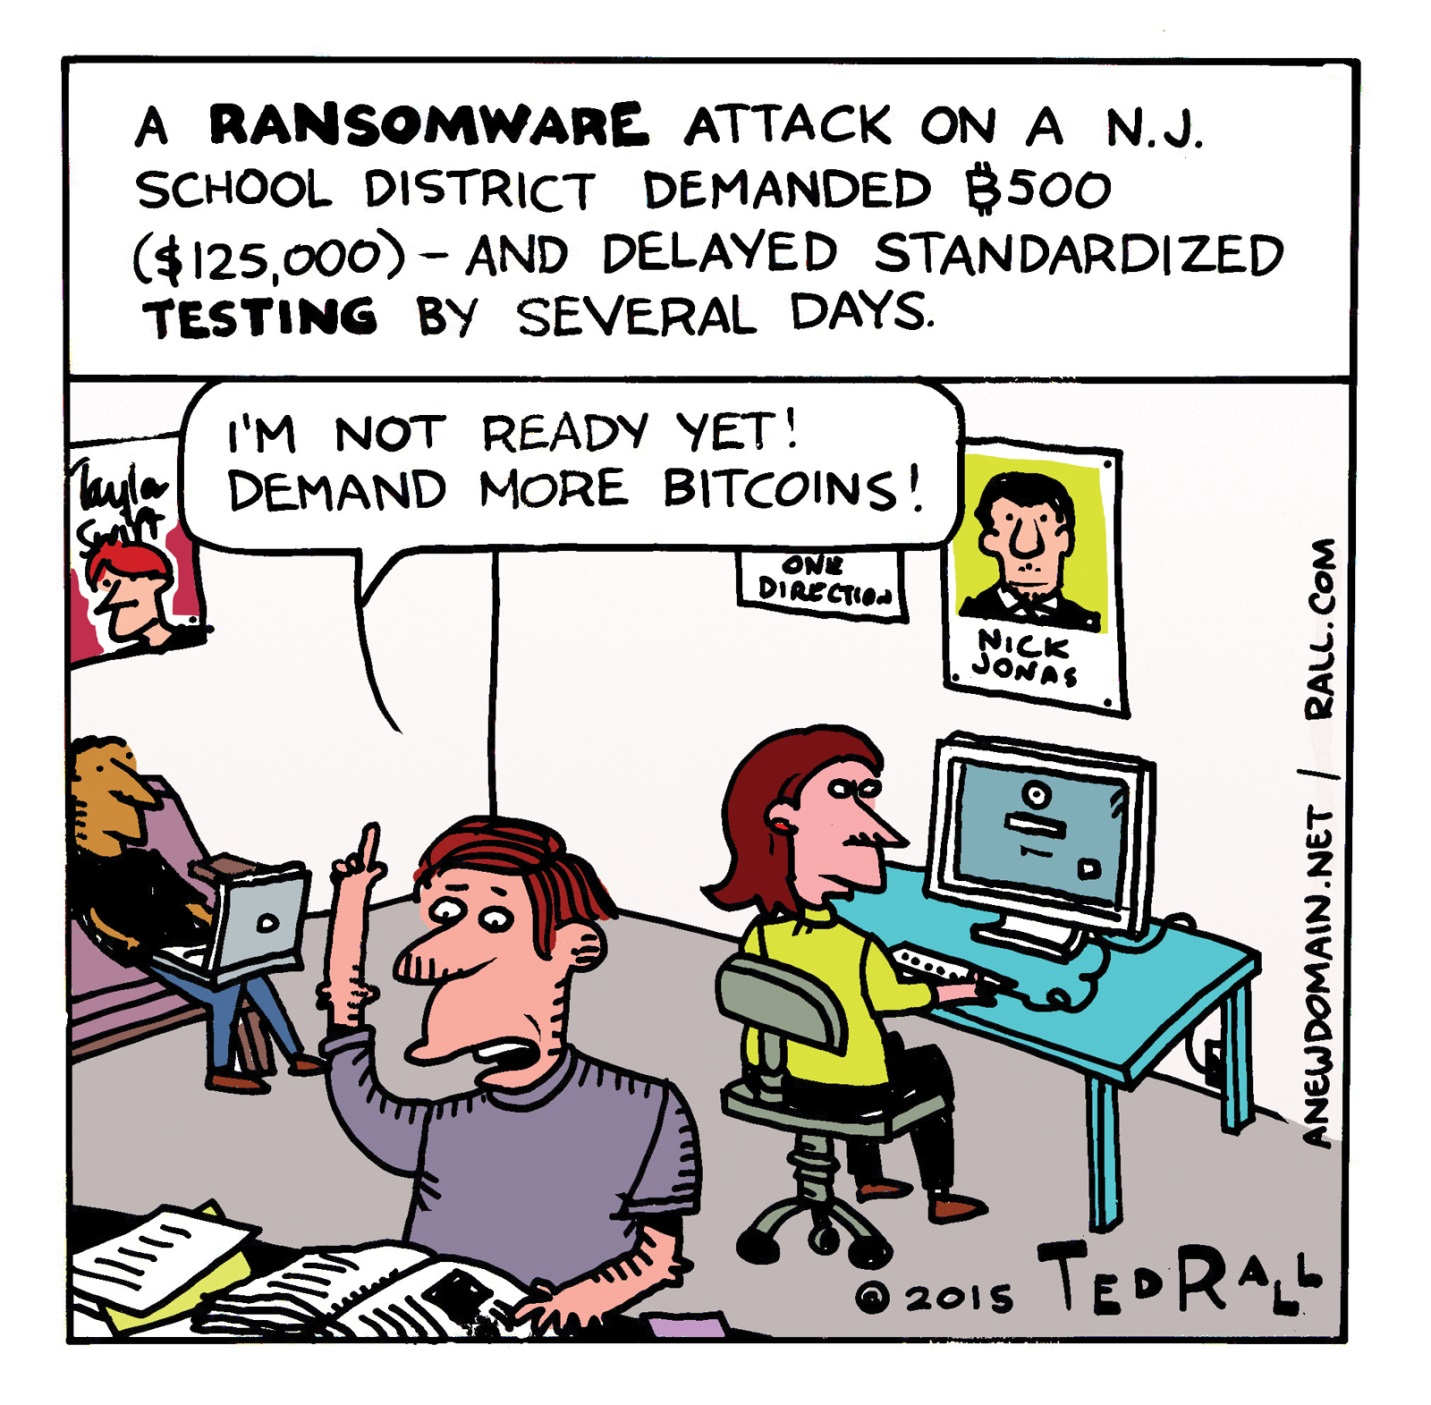 ransomware attack on school